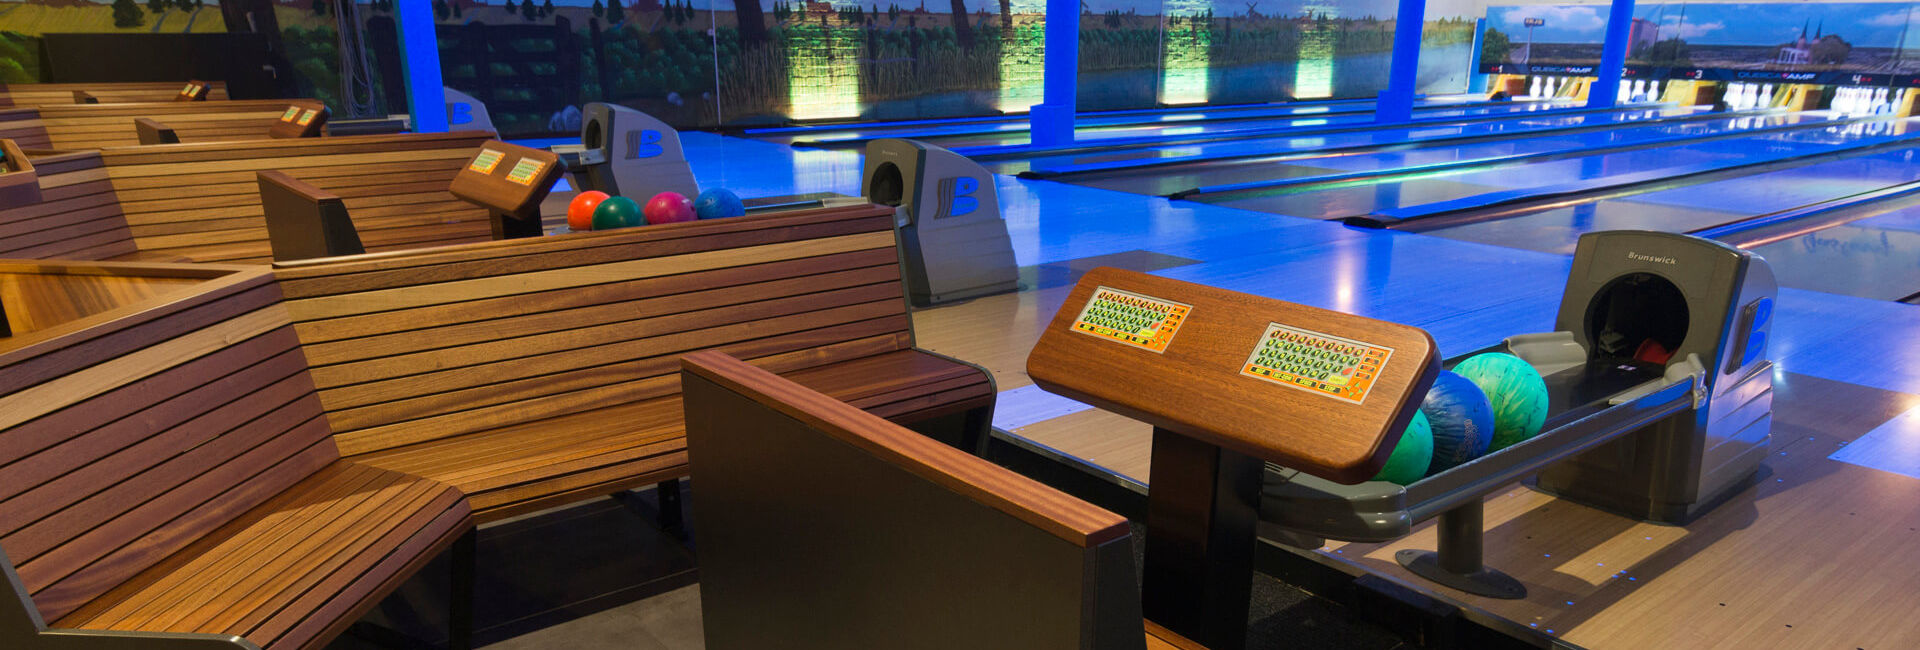 Bowling lanes and seats - Route directions - Gasterij 't Karrewiel